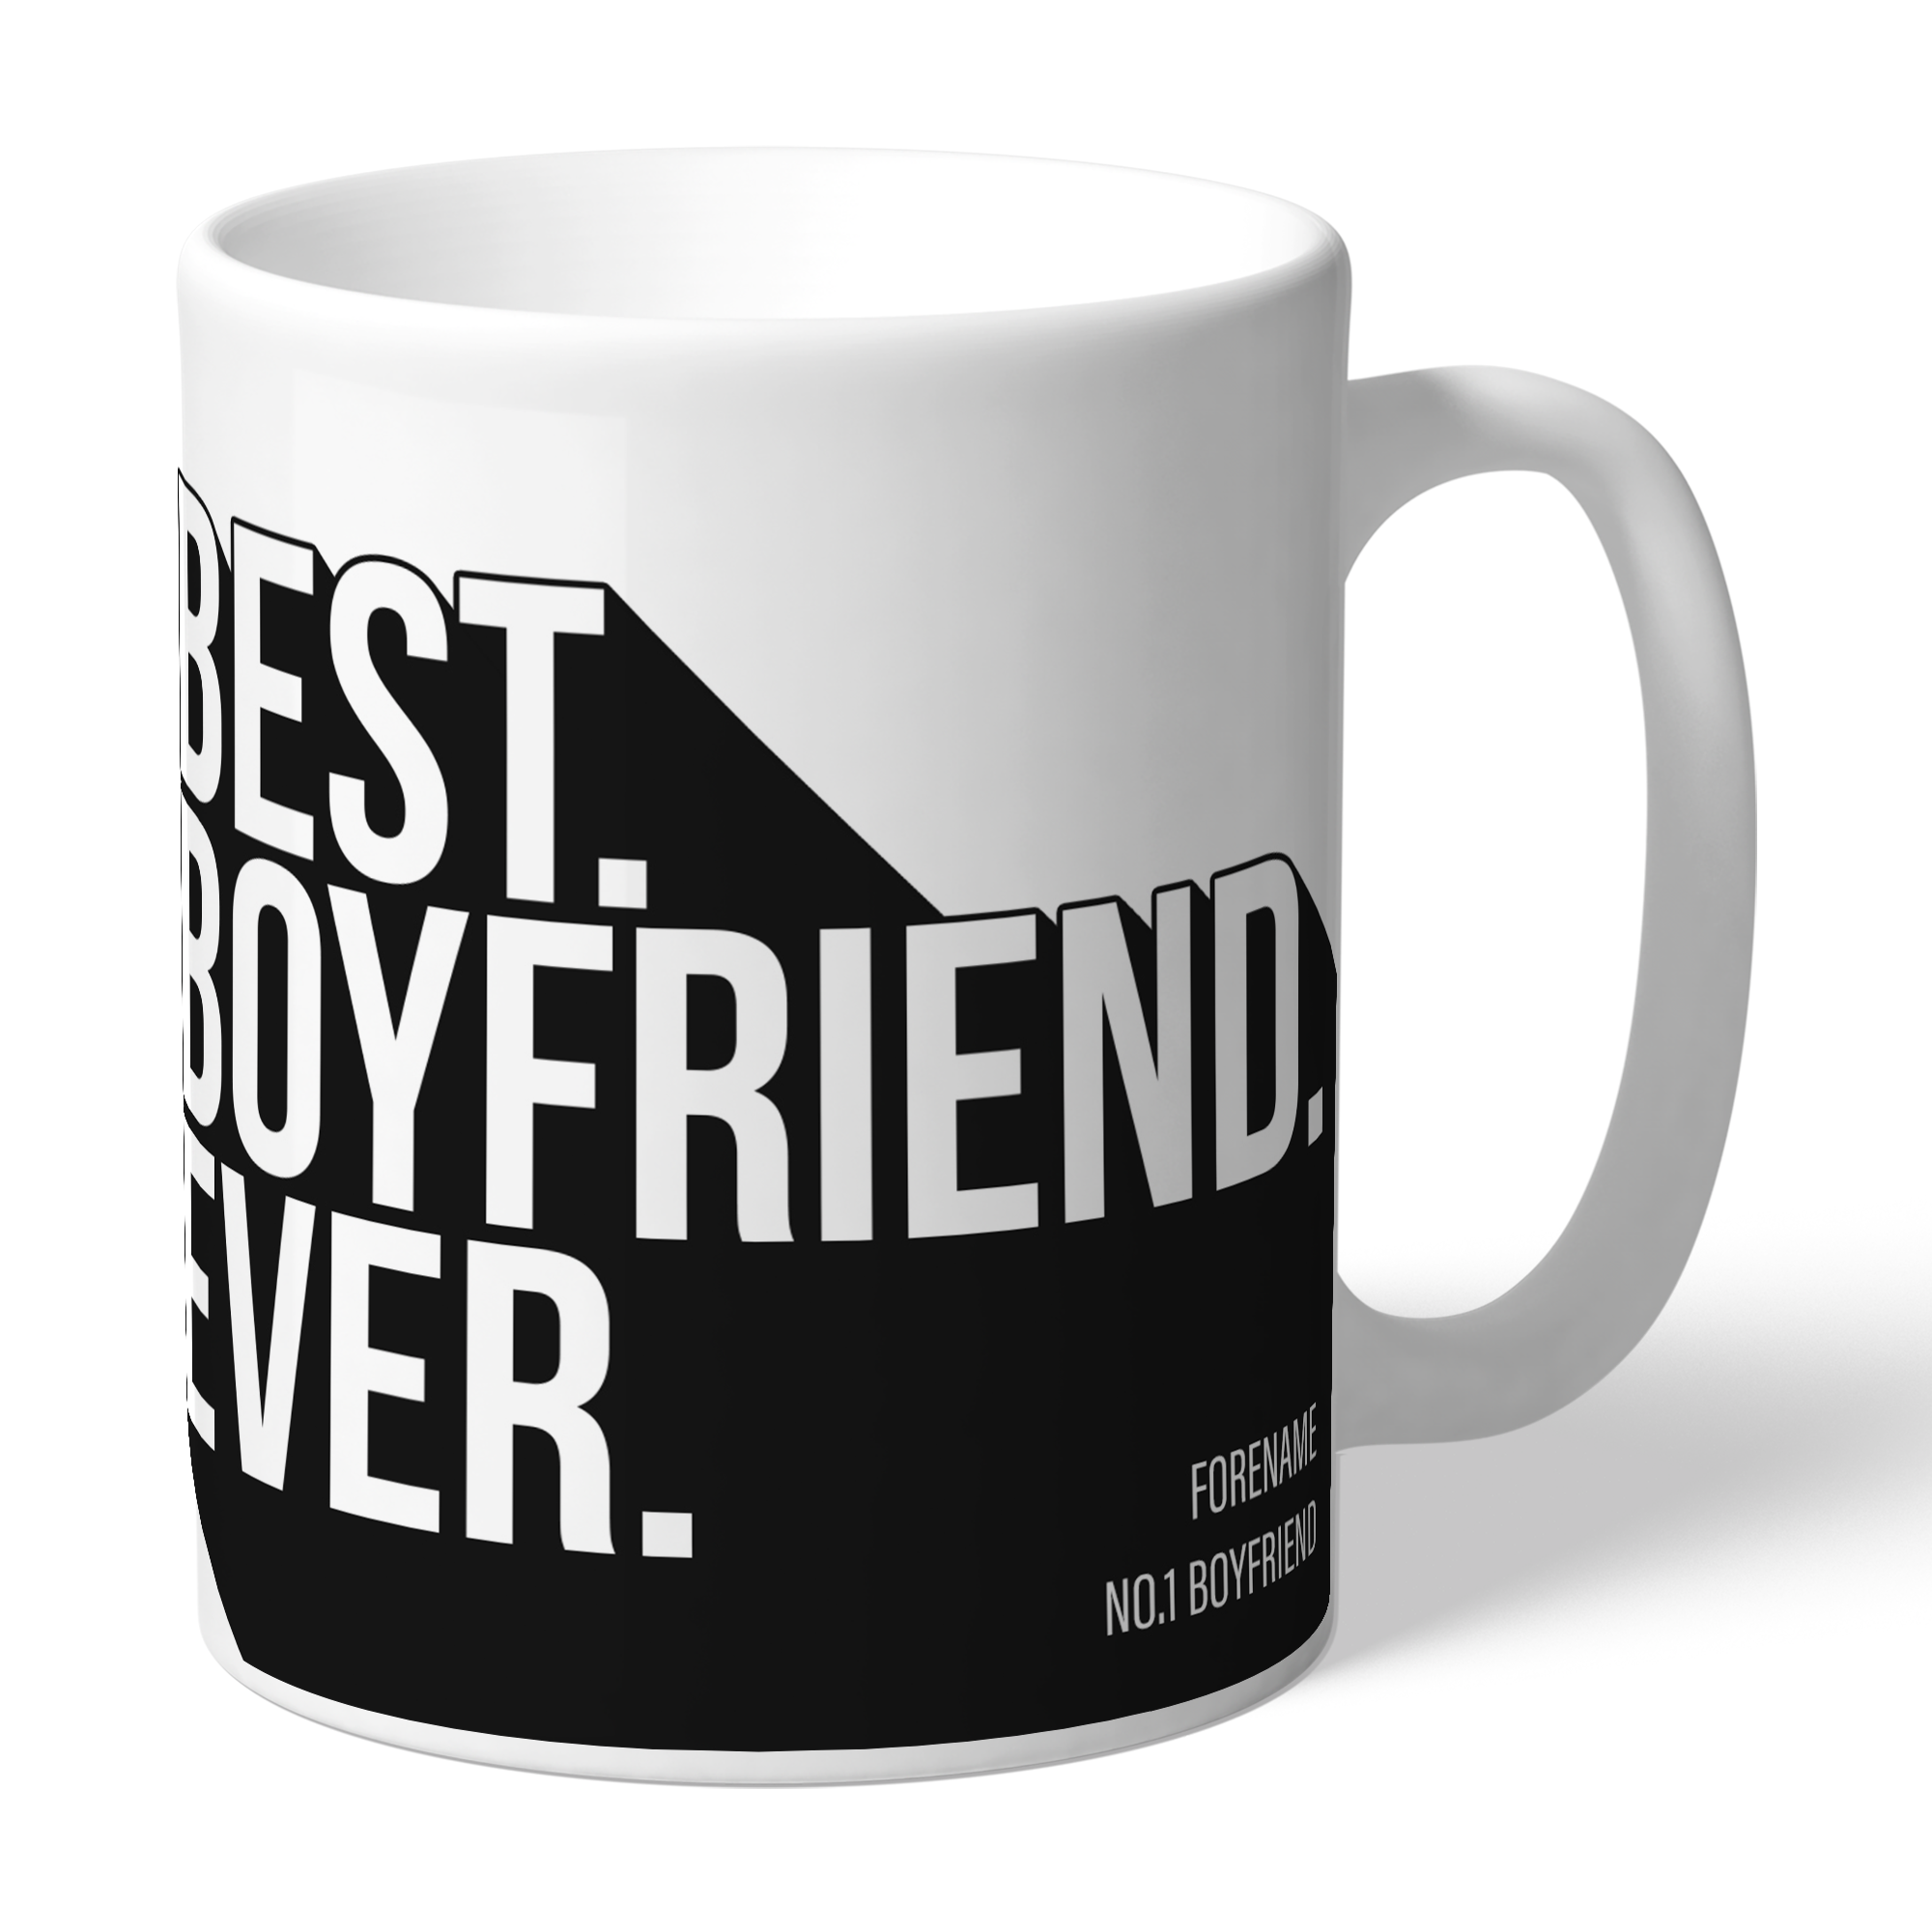 Newcastle United FC Best Boyfriend Ever Mug